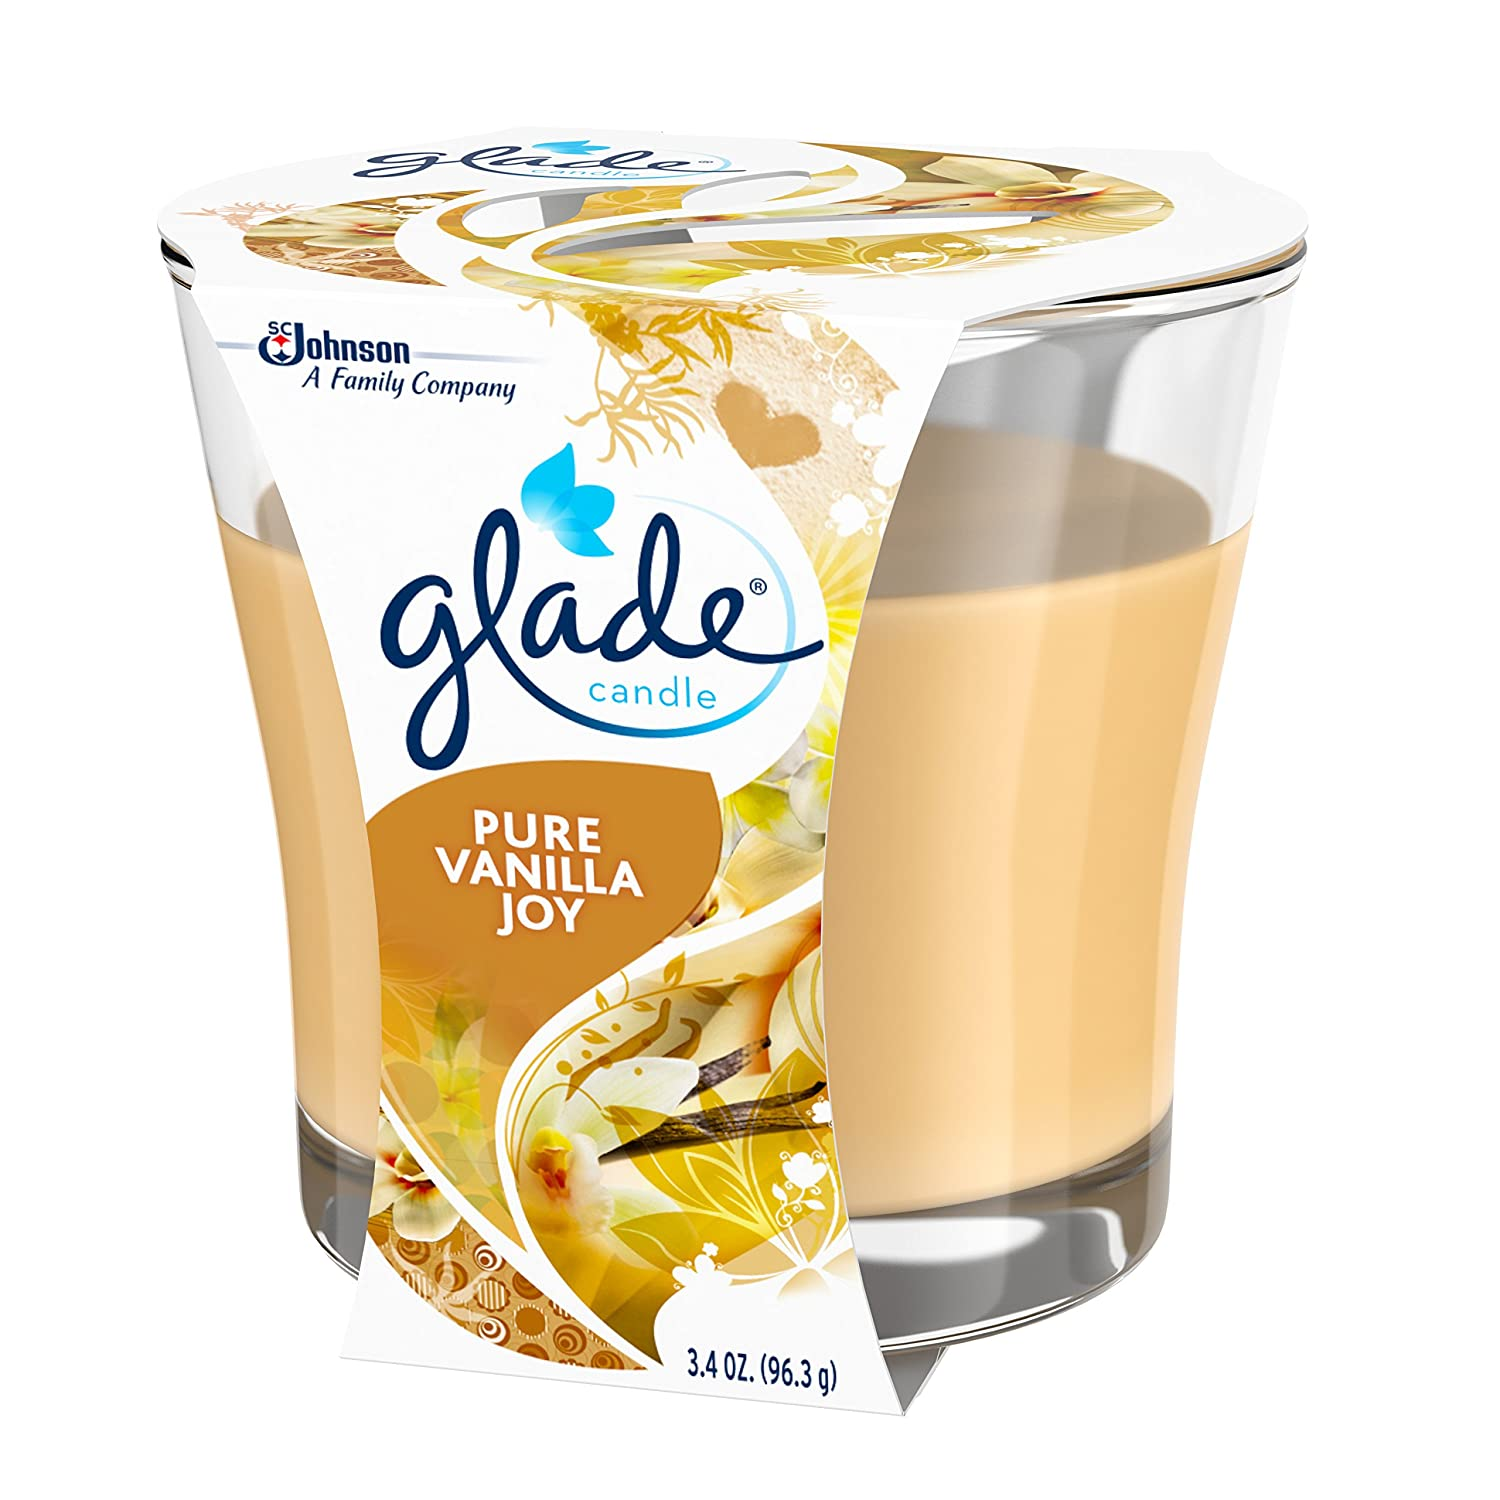 Amazon.com: Glade Jar Candle Air Freshener, Pure Vanilla Joy, 3.4 Ounce: Health & Personal Care